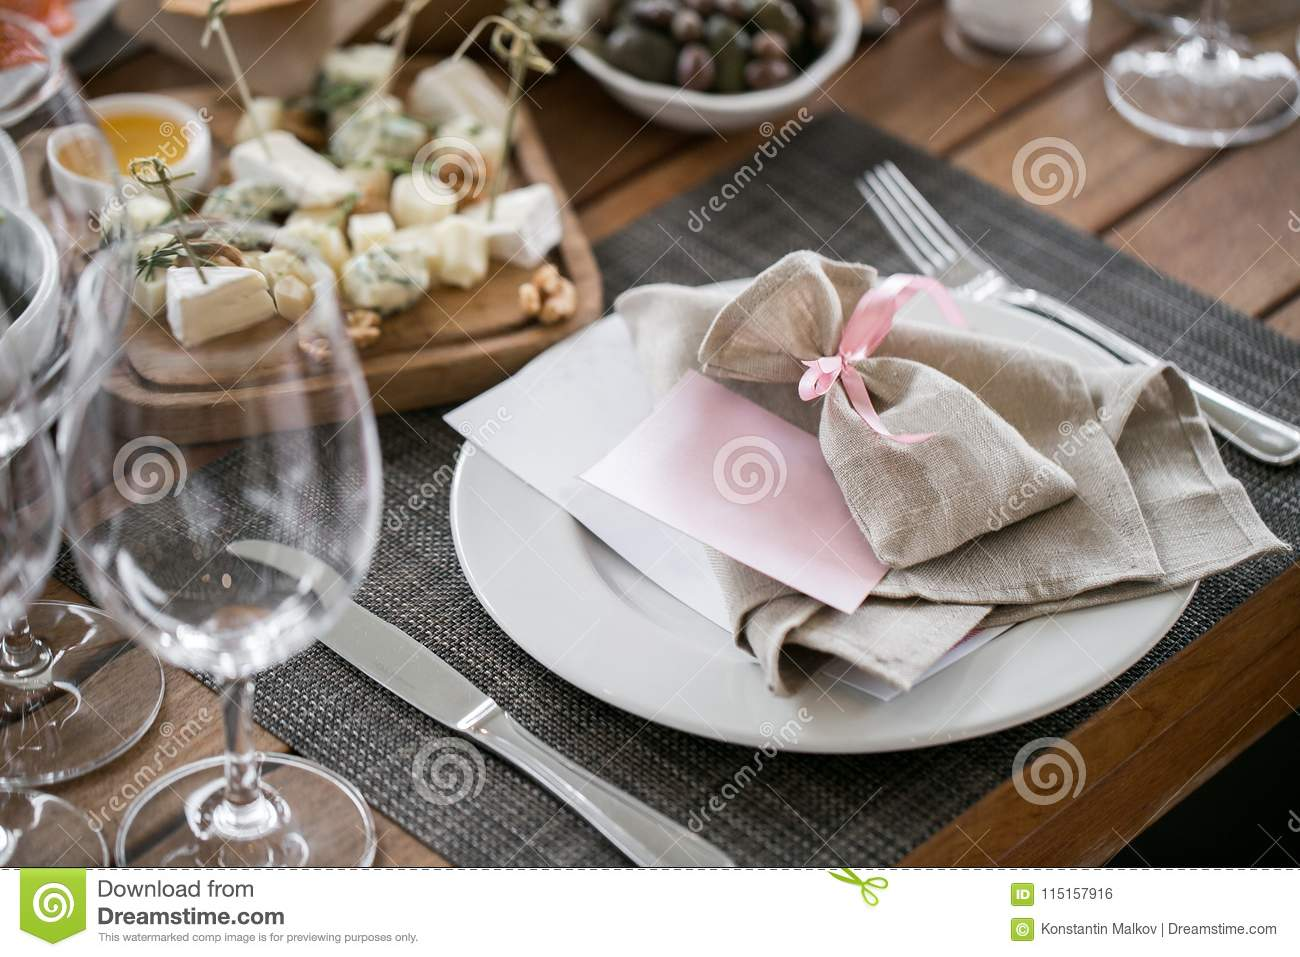 Plate With Linen Napkin And Pouch Gift Luxury Wedding Reception In Restaurant Stylish Decor And Adorning Tables Stock Photo Image Of Banquet Celebration 115157916